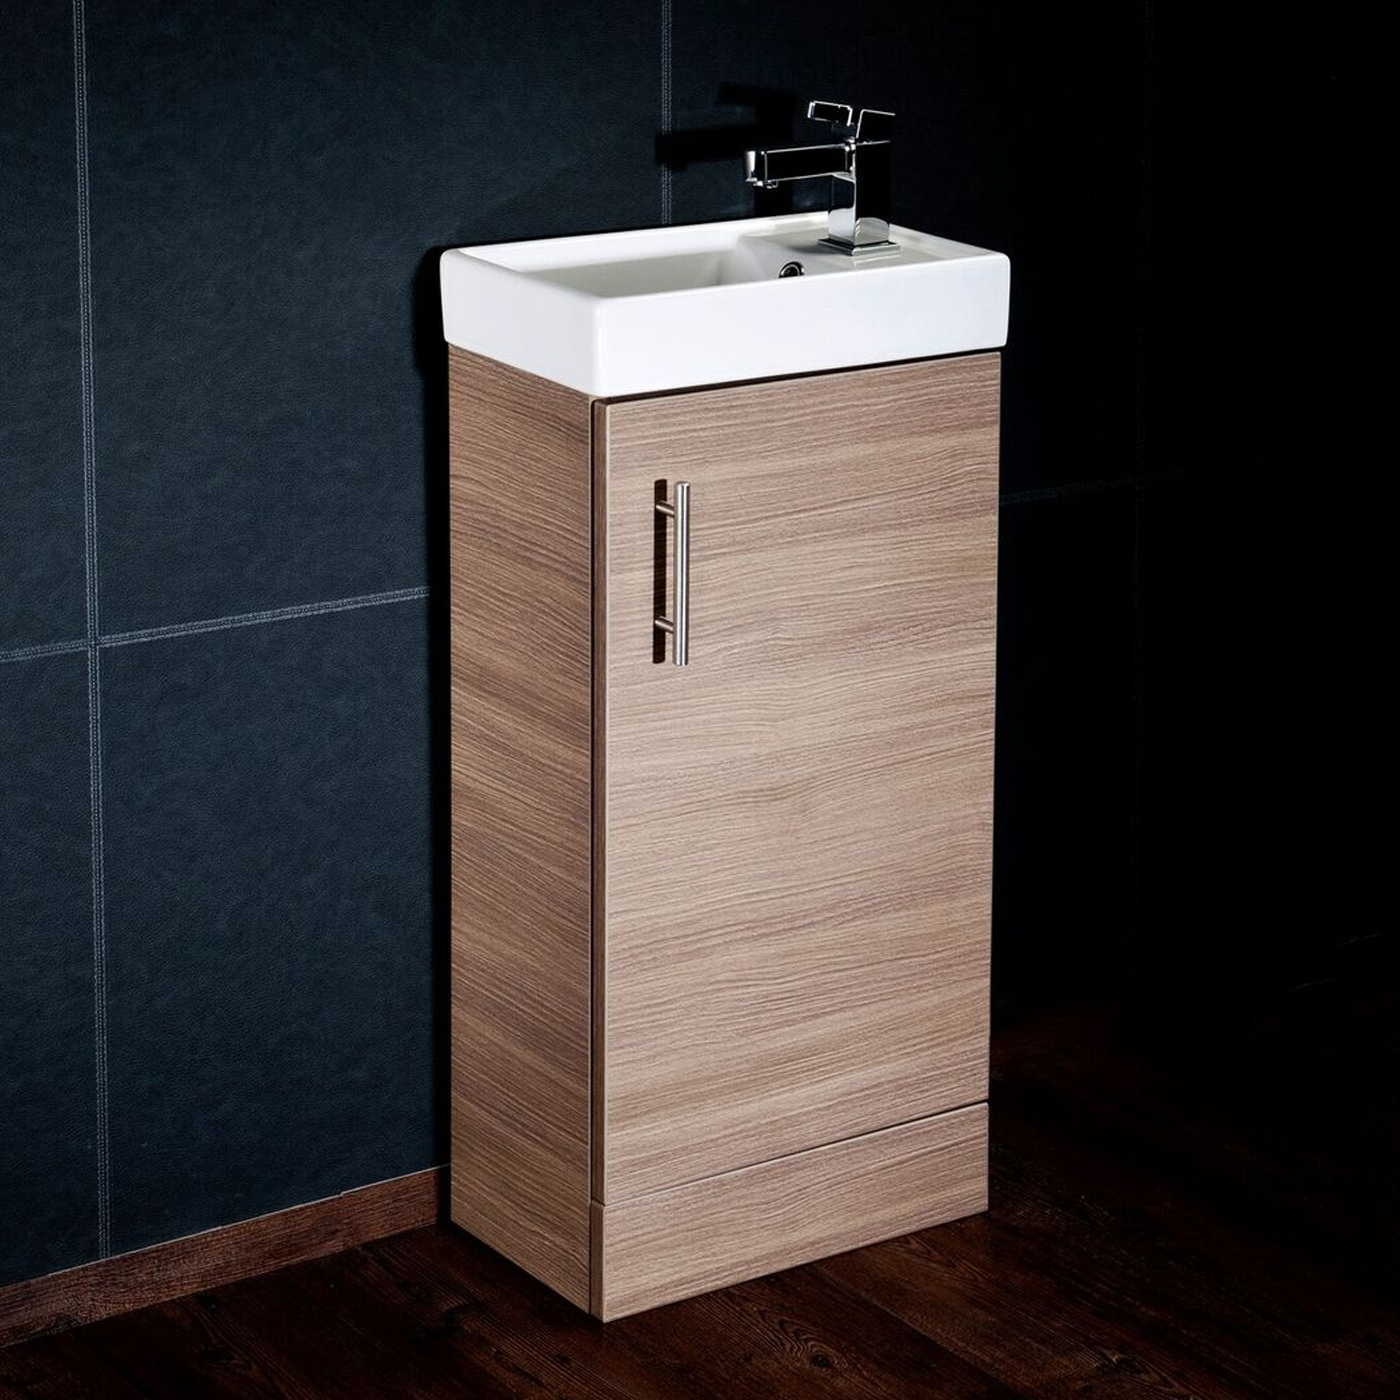 Cali Cube Vanity Unit with Basin - 400mm Wide - Medium Oak